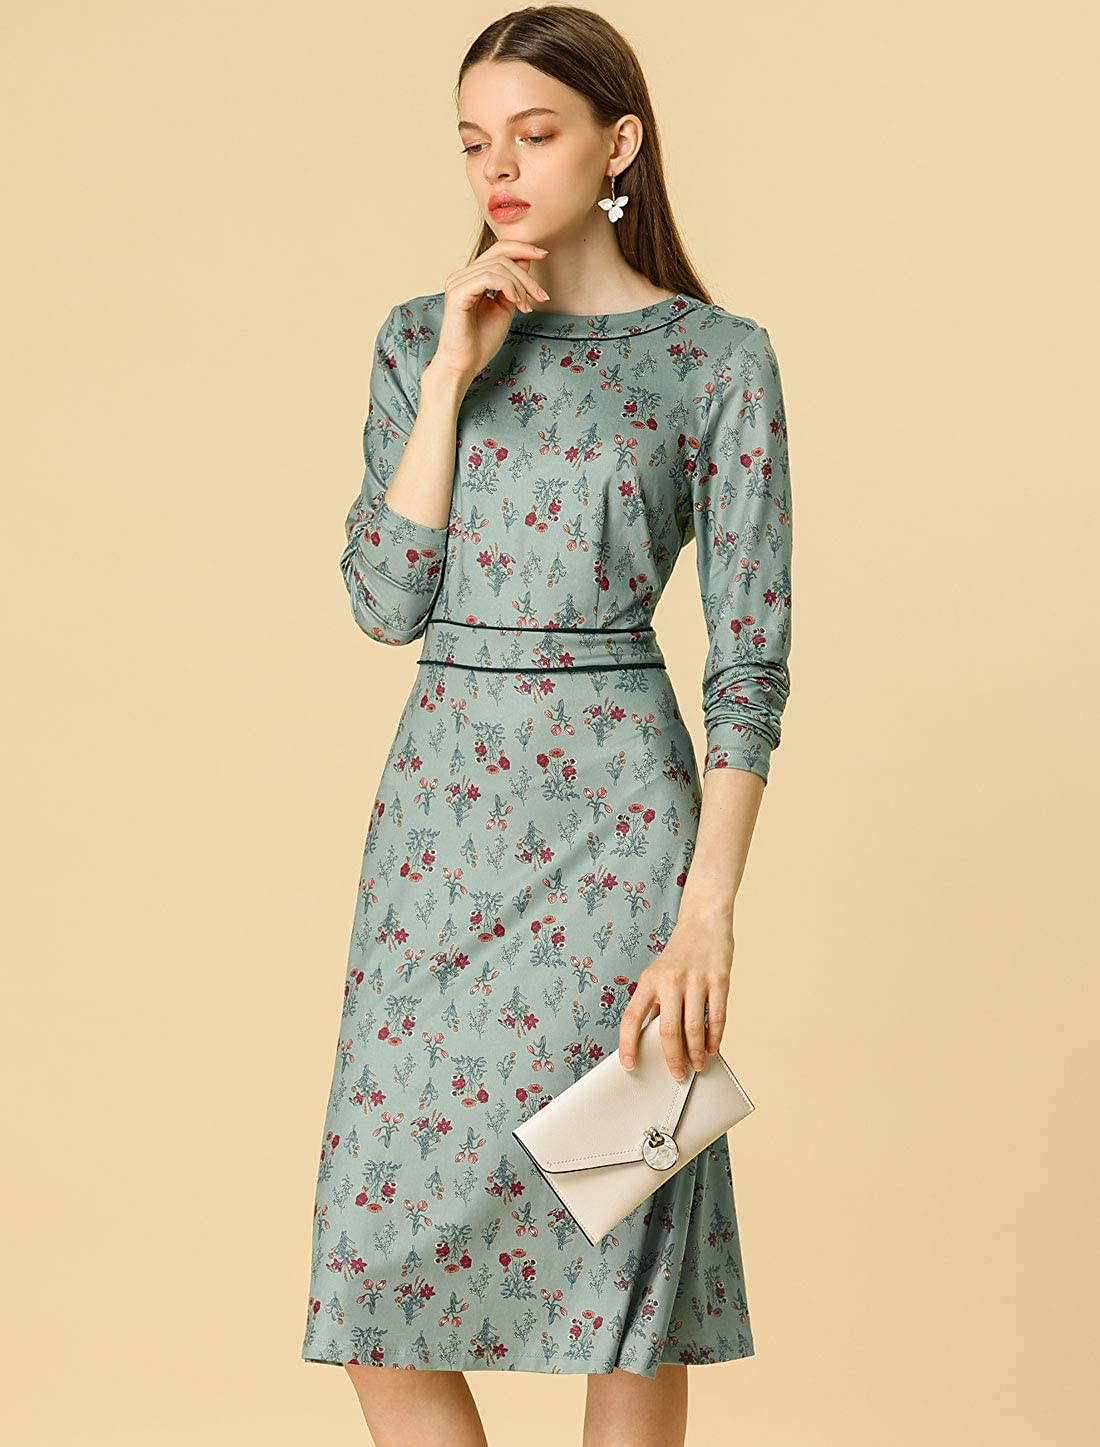 500 Vintage Style Dresses for Sale | Vintage Inspired Dresses Allegra K Womens Floral Long Sleeve Crew Neck Contrast Piped A-Line Vintage Dress $22.99 AT vintagedancer.com